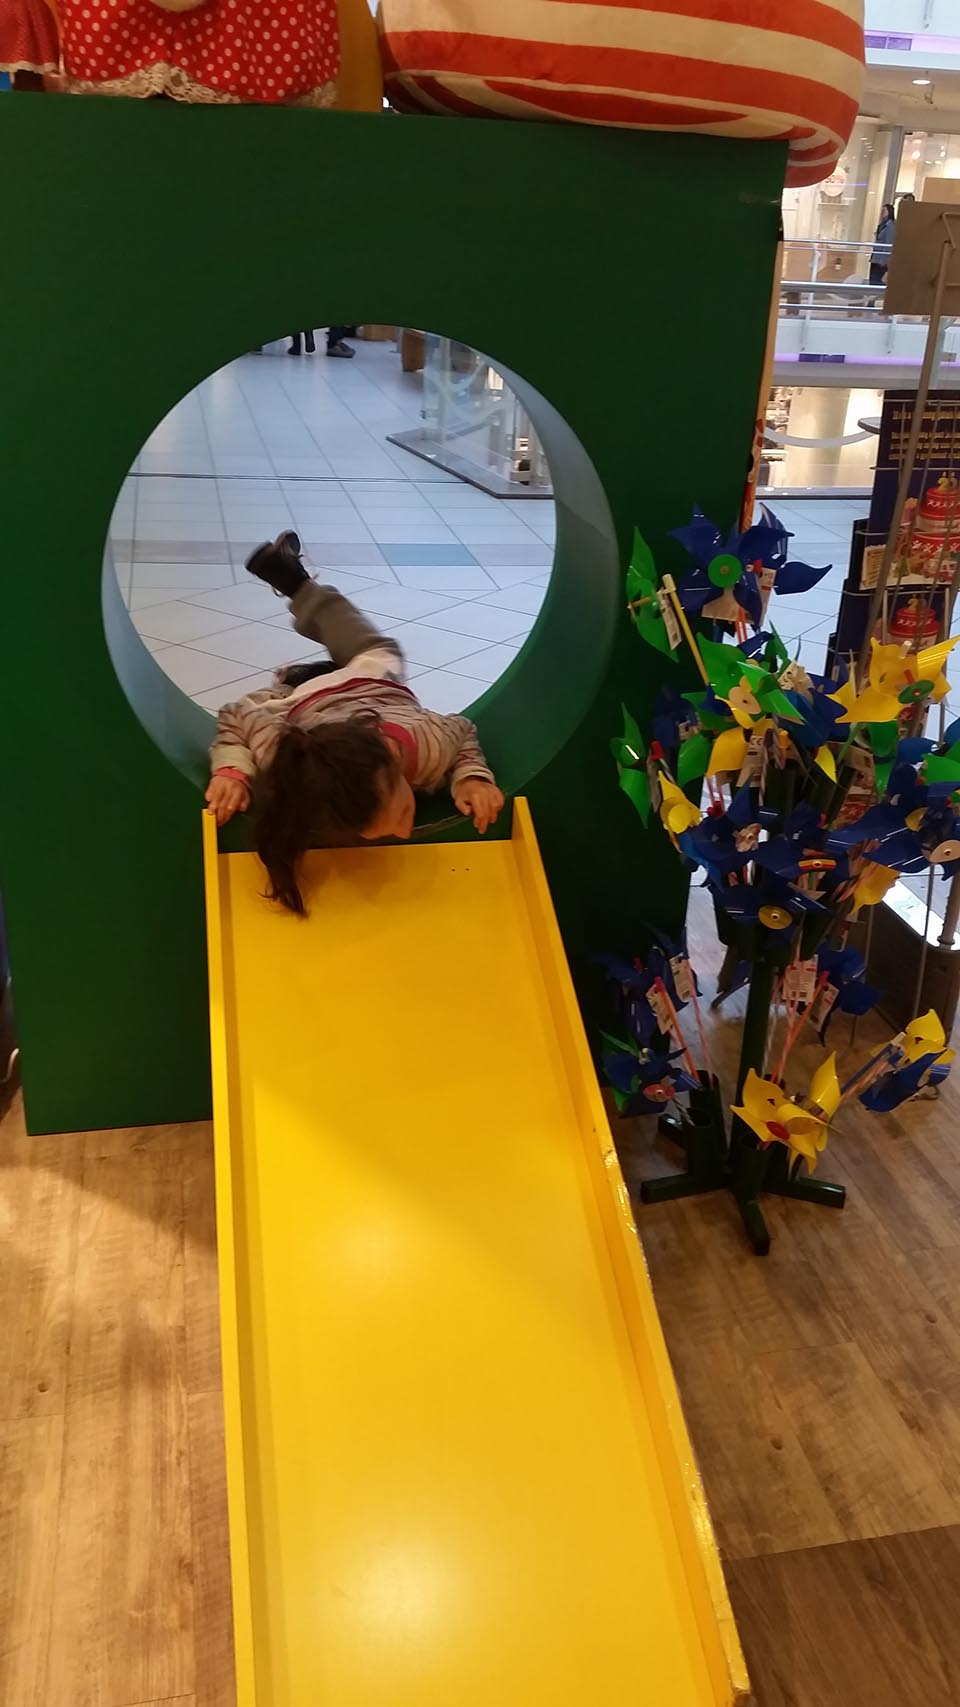 Playing in the mall